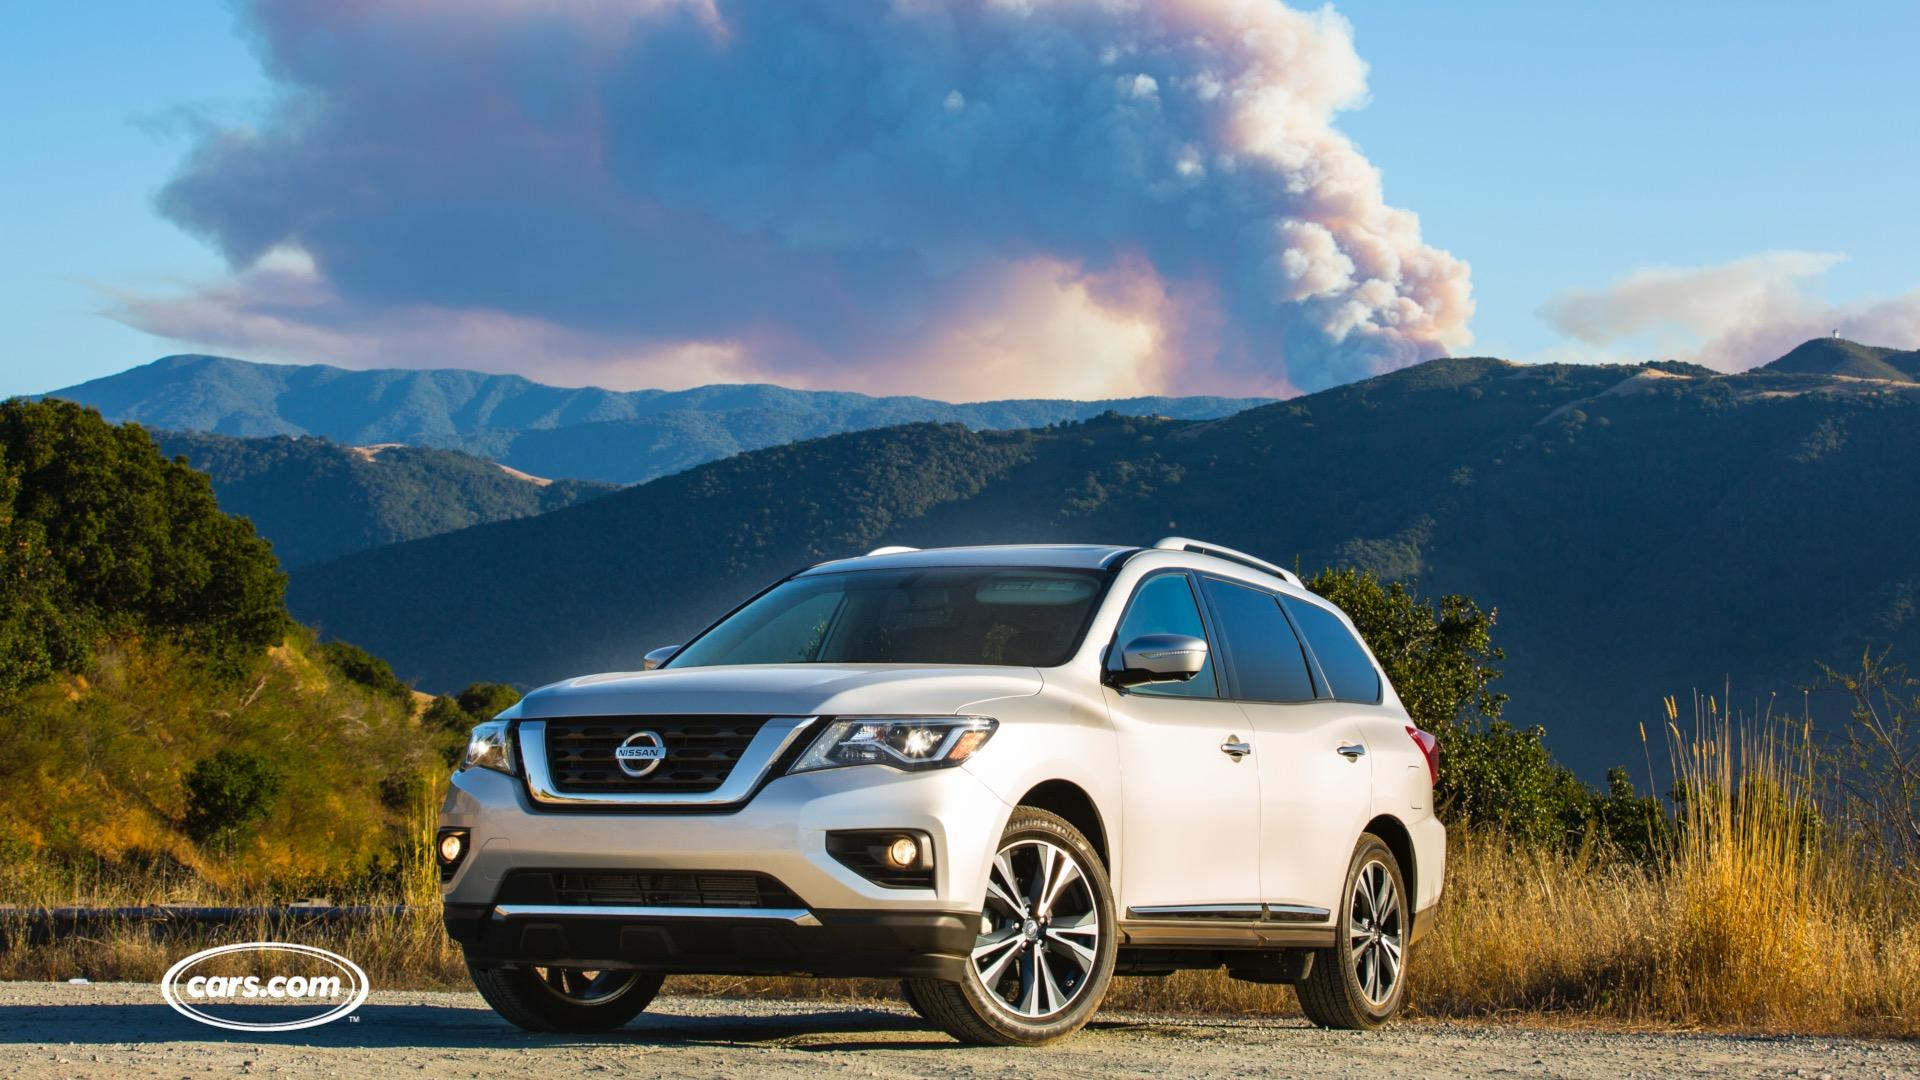 2017 Nissan Pathfinder - For every turn, there's cars com